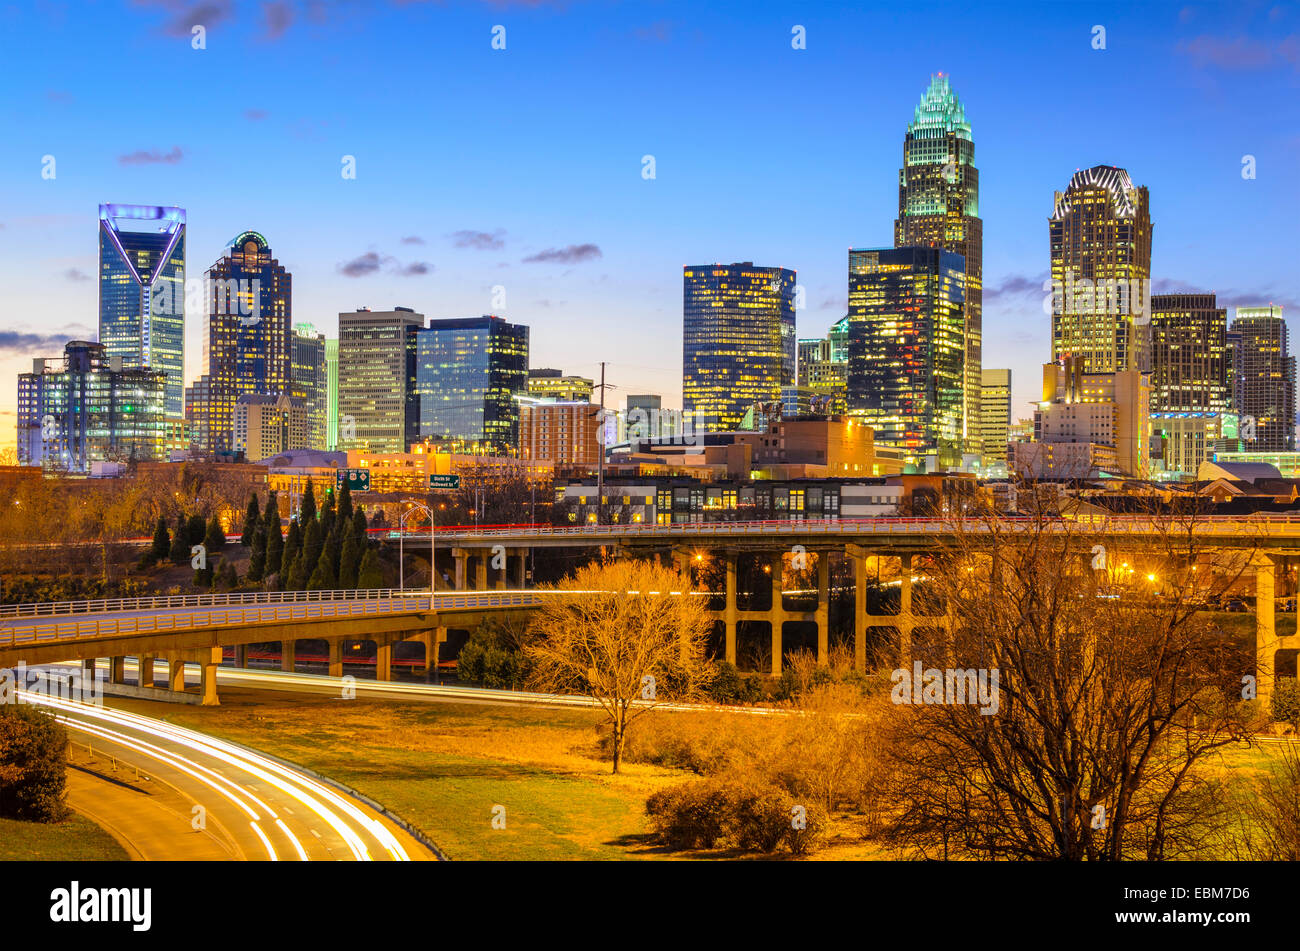 Die Skyline von Charlotte, North Carolina, USA Innenstadt. Stockfoto